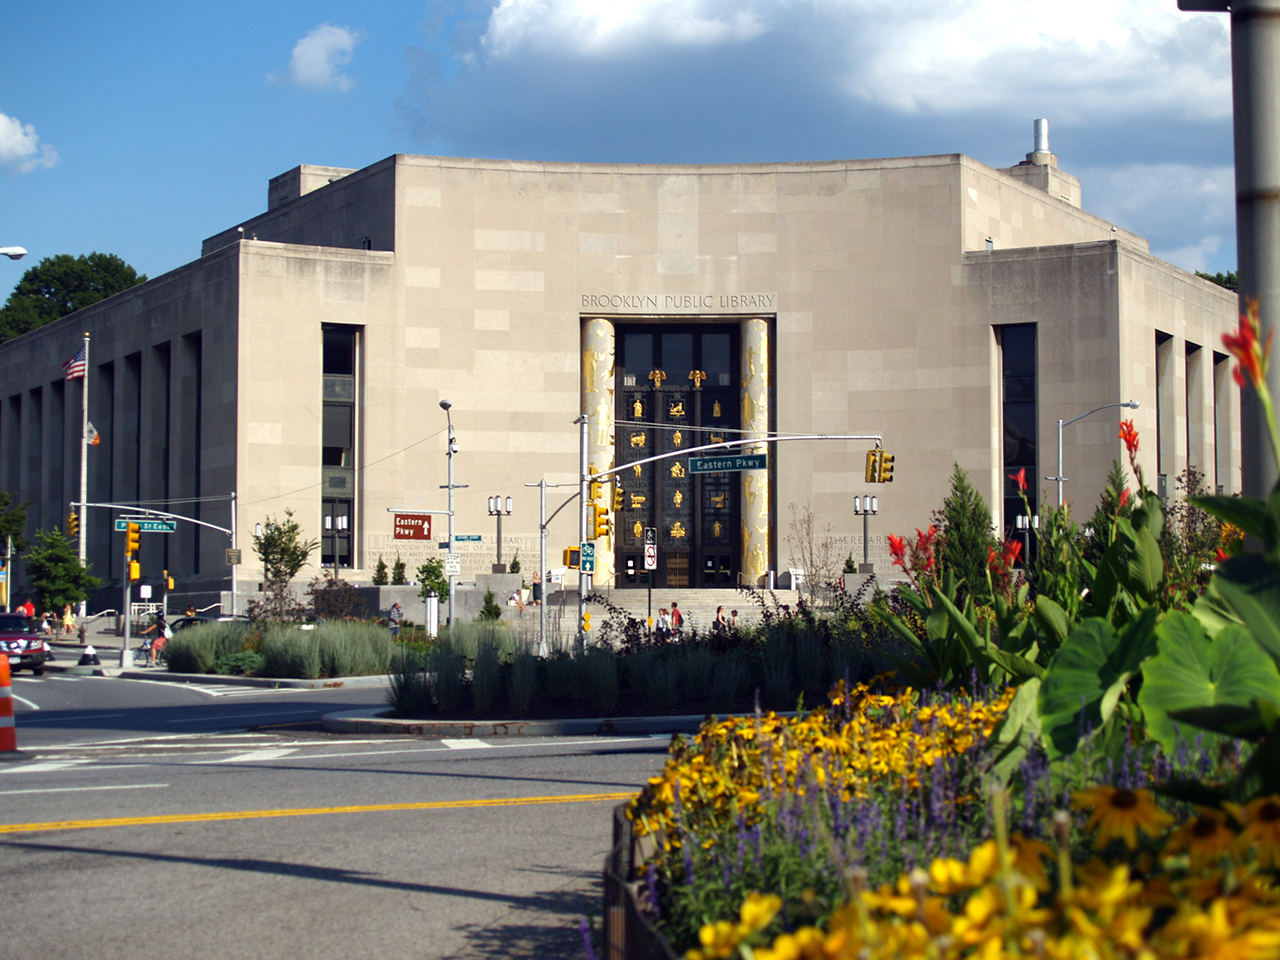 The Brooklyn Public Library system's Central Library (photo by David Shankbone/Wikipedia)